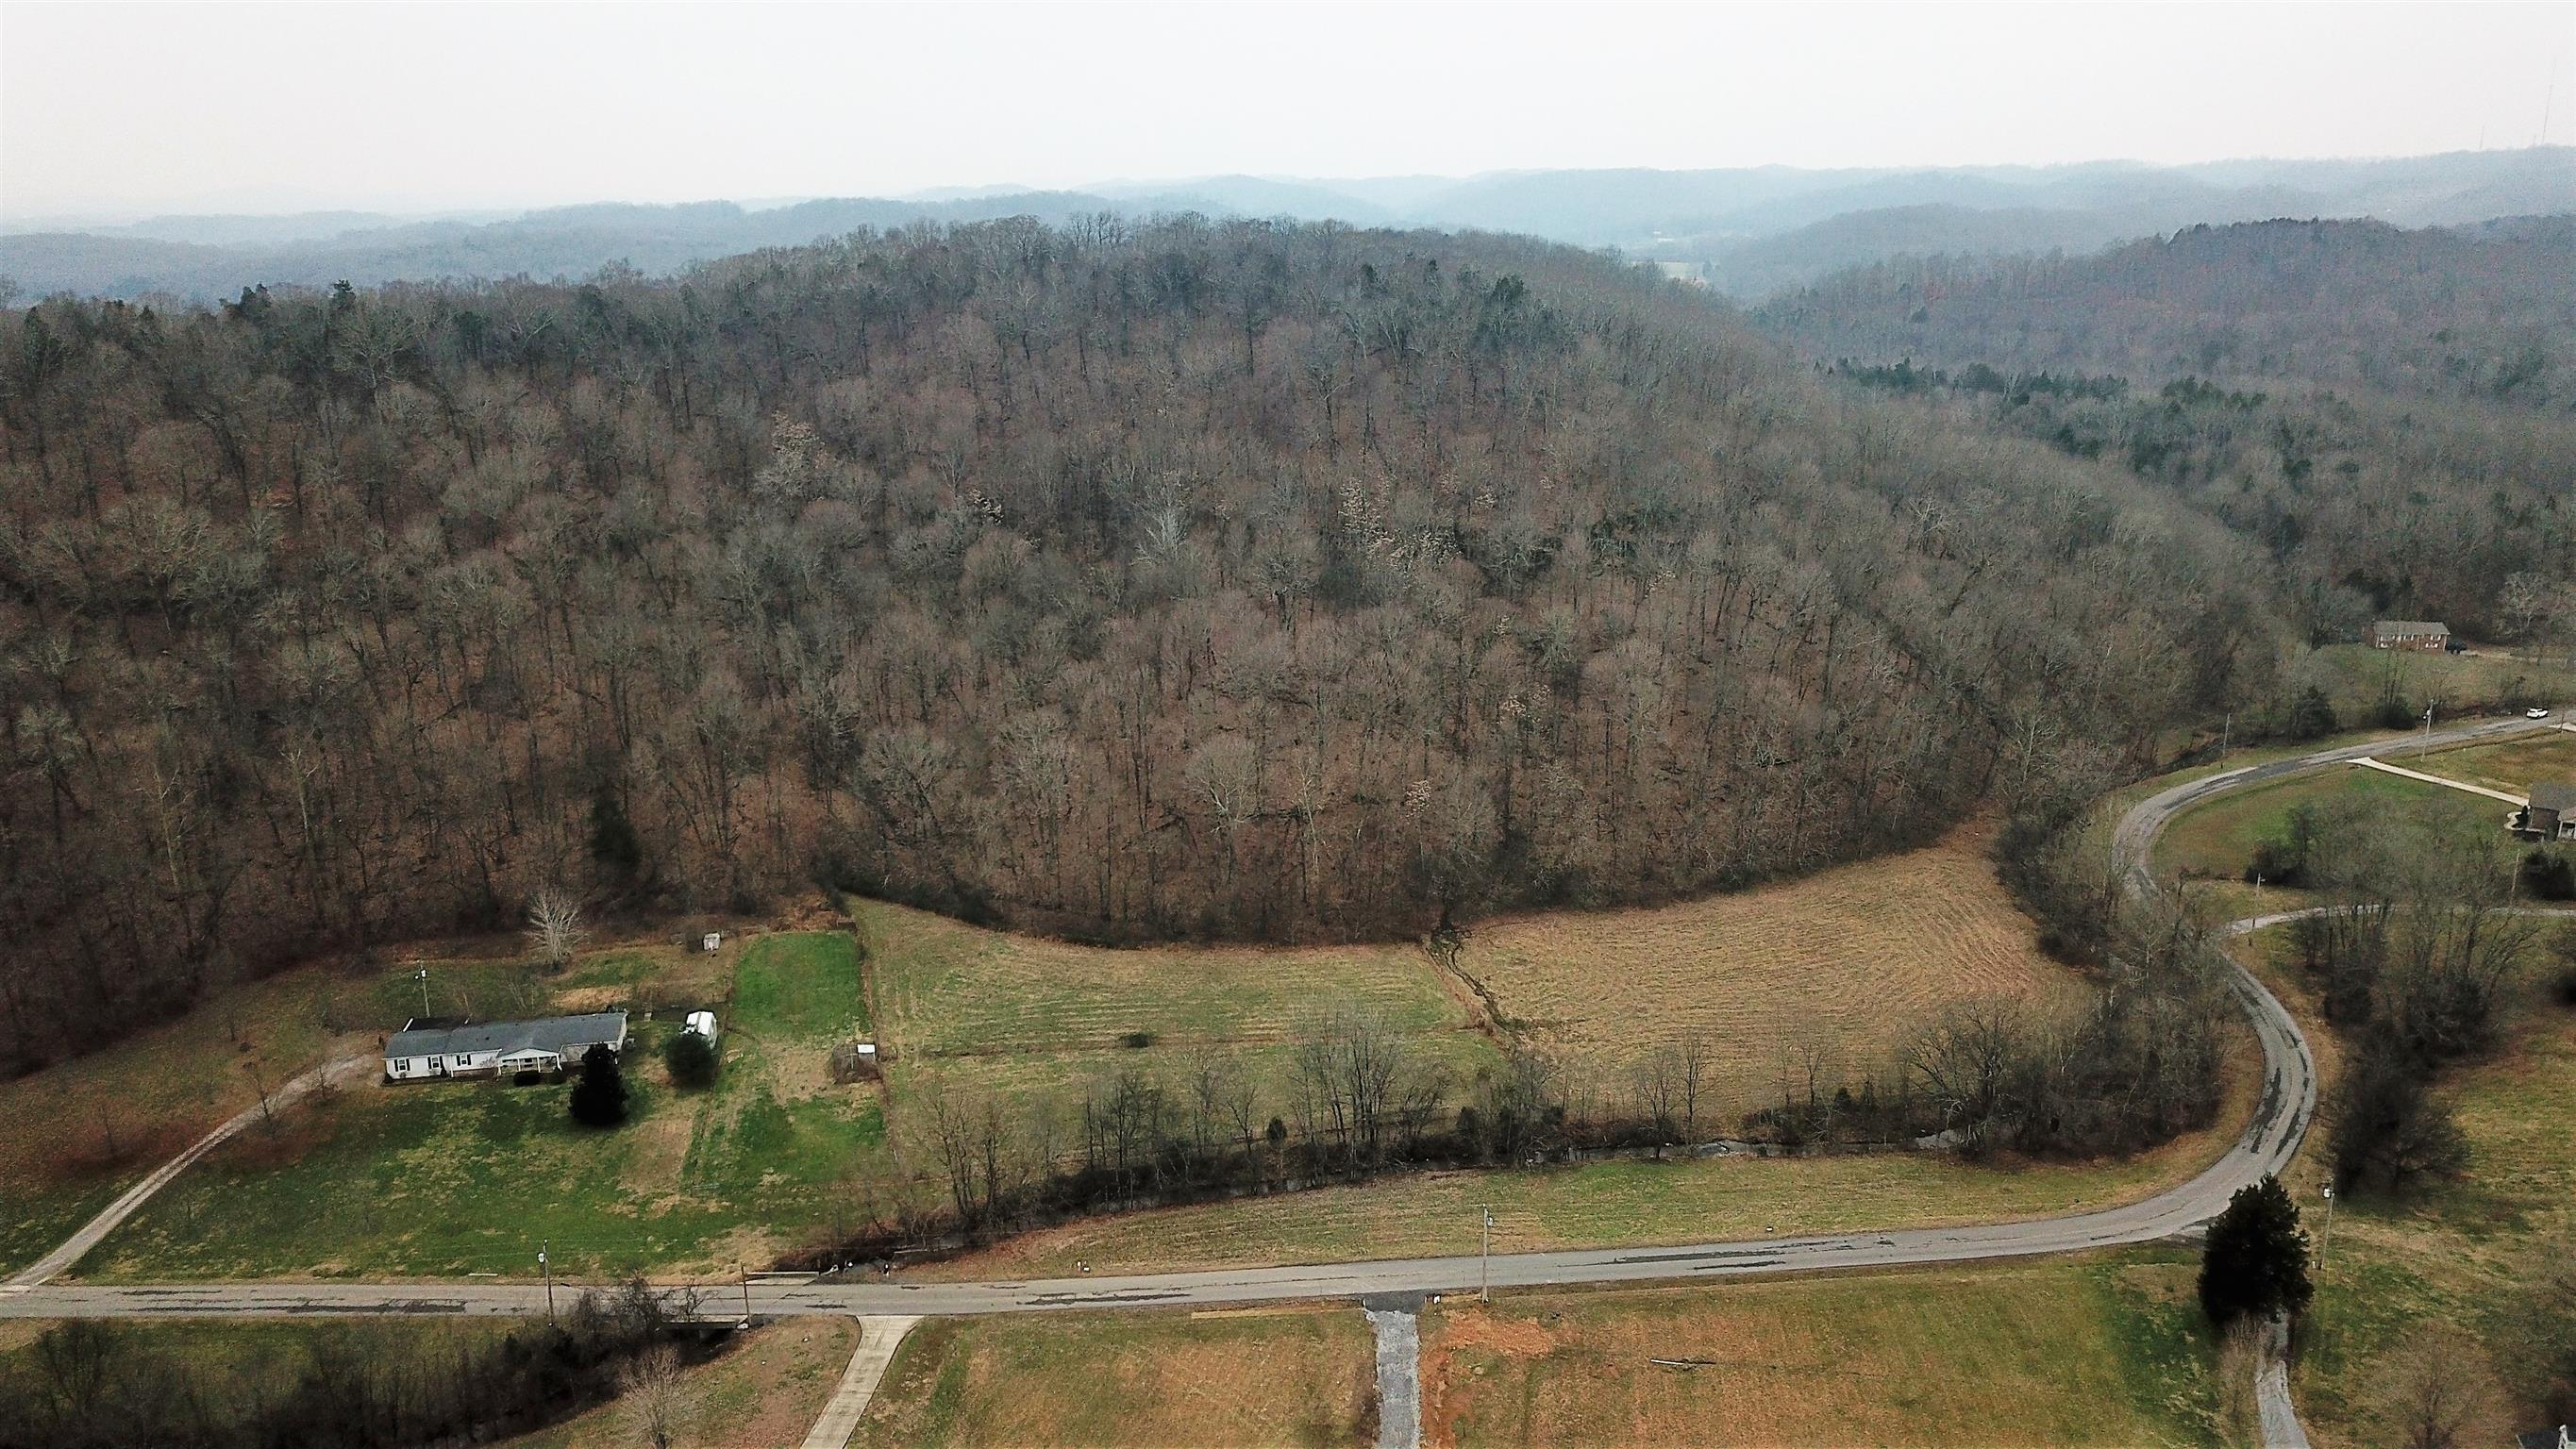 Enjoy A Gatlinburg Like Feeling With 10.43 Partially Wooded Acres Located At 407 Lindsey Hollow 2-3 Lot #2, Gallatin, TN.  37066